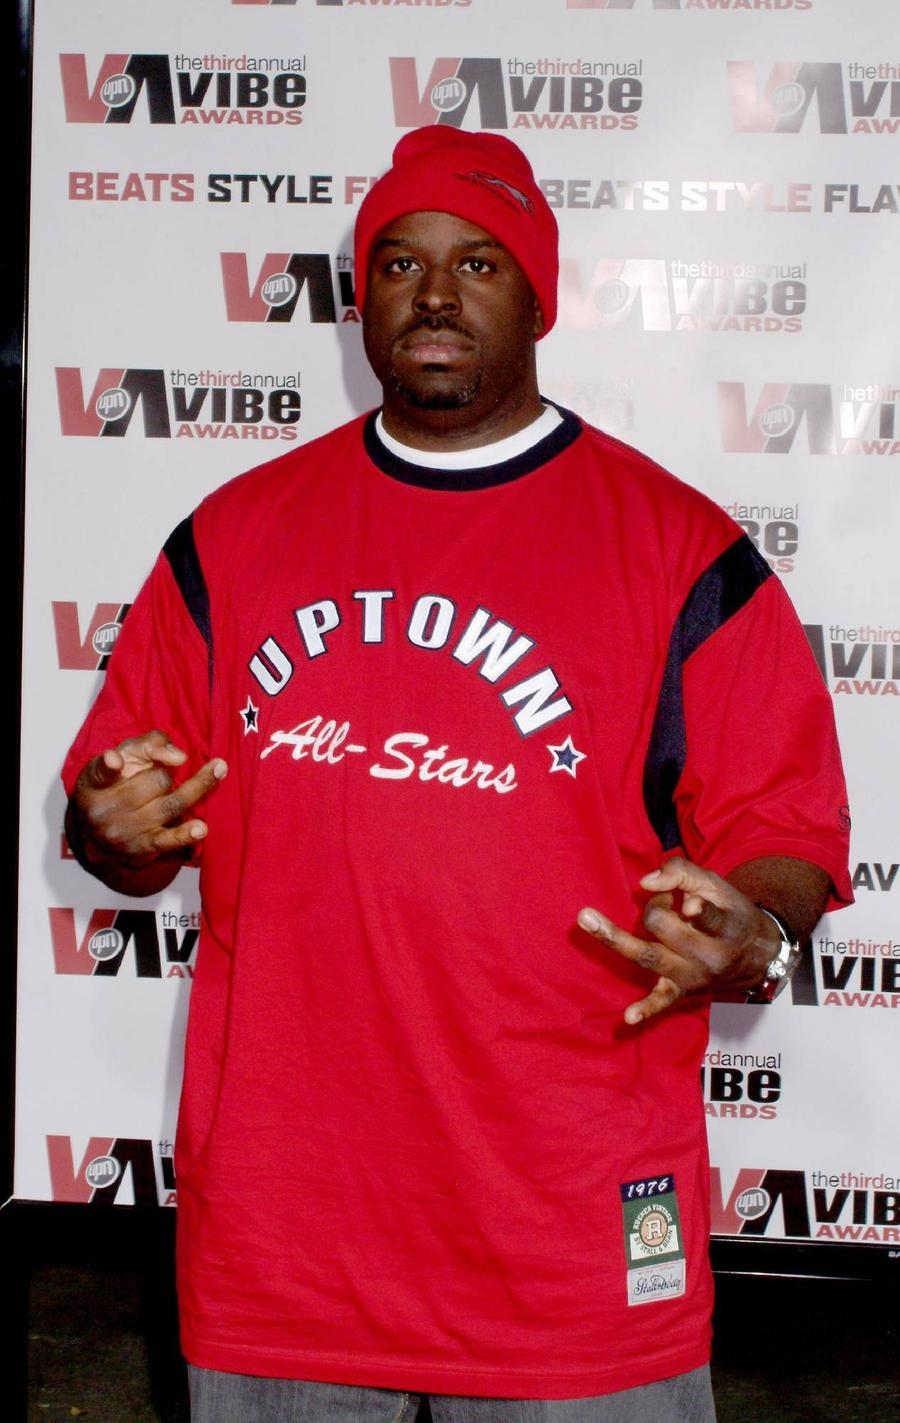 Dj Funkmaster Flex Facing Copyright Infringement Lawsuit